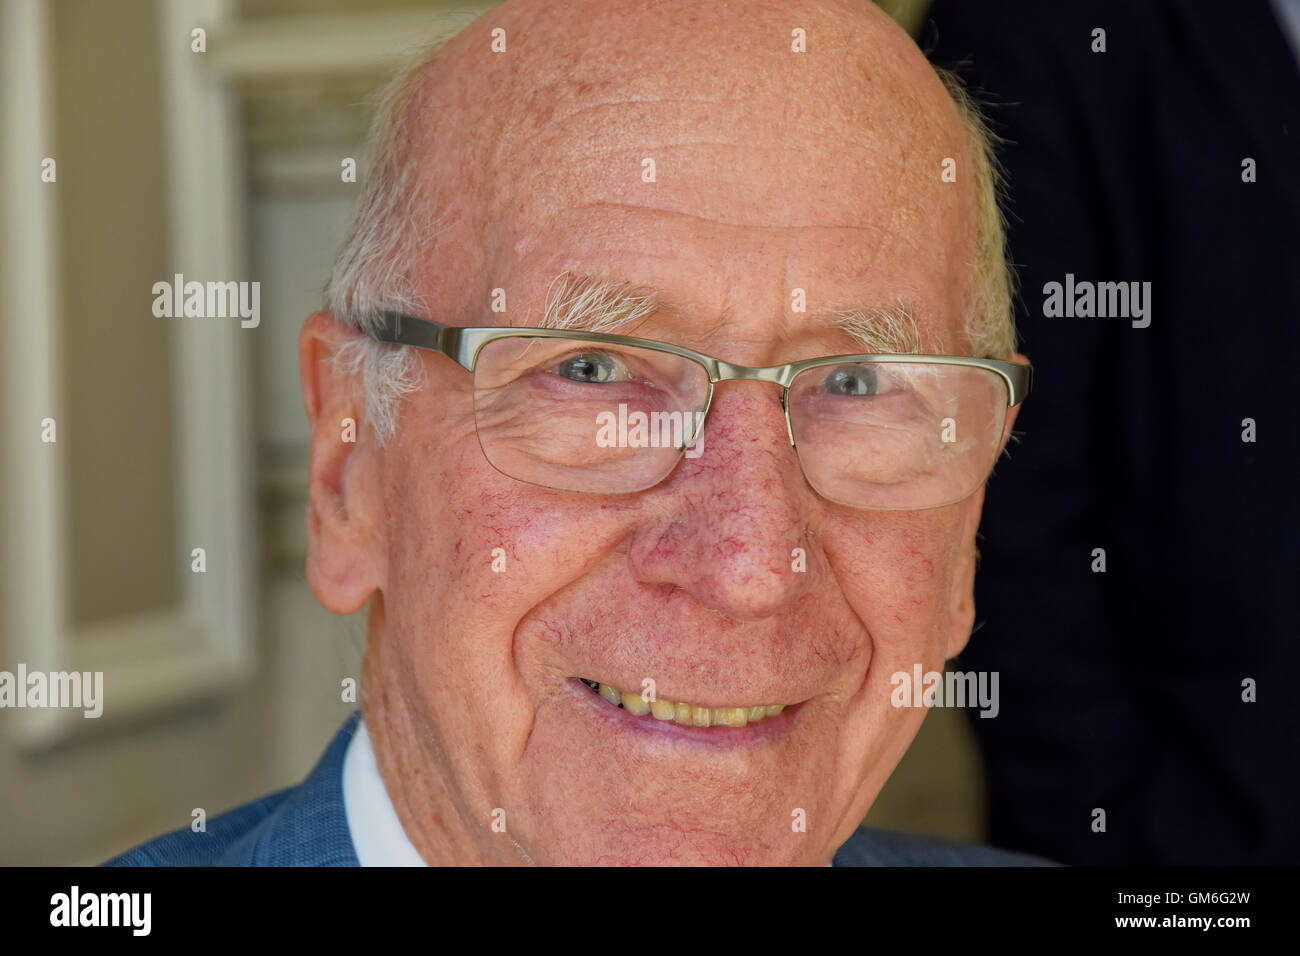 Sir Bobby Charlton, Director of Manchester United Football Club and former Manchester United and England footballer - Stock Image